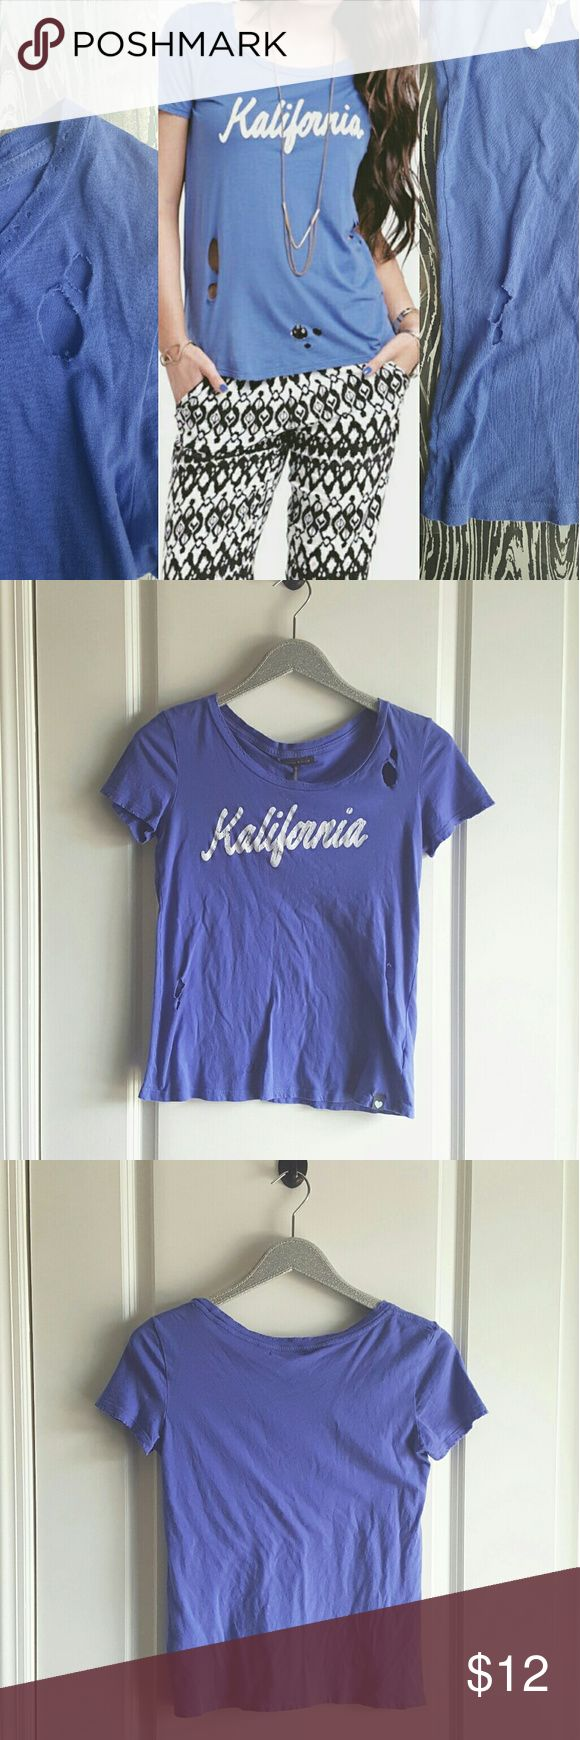 Kendall & Kylie Distressed Kalifornia Tee From their earlier line this Kendall and Kylie Kalifornia Tee sports a distressed look and is in EUC!! 🎉Every listing purchased enters you in for a gift card drawing at the end of the month. Kendall & Kylie Tops Tees - Short Sleeve